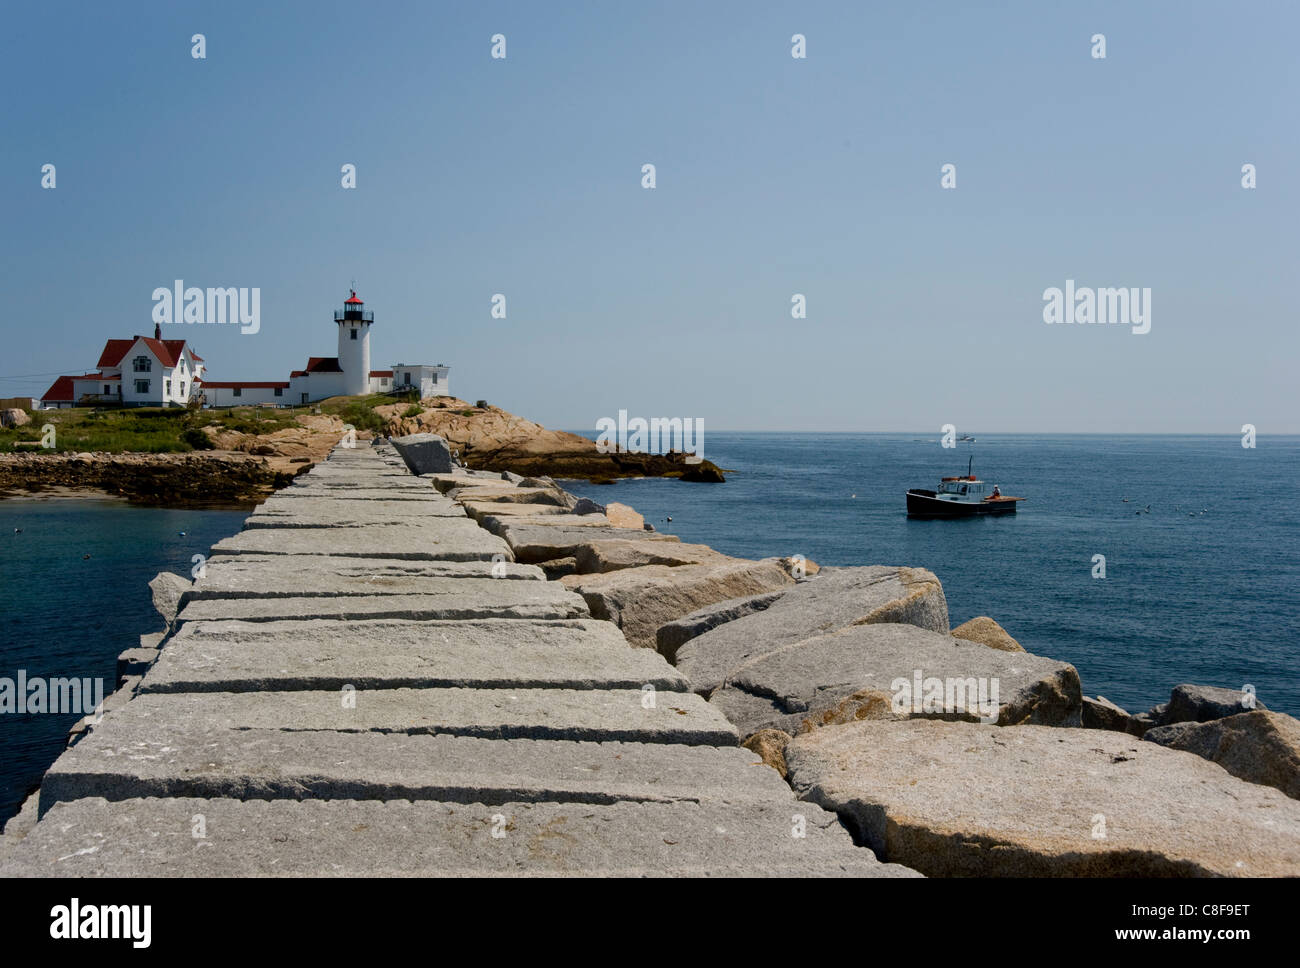 The Eastern Point lighthouse, Gloucester, Massachussetts, New England, United States of America - Stock Image